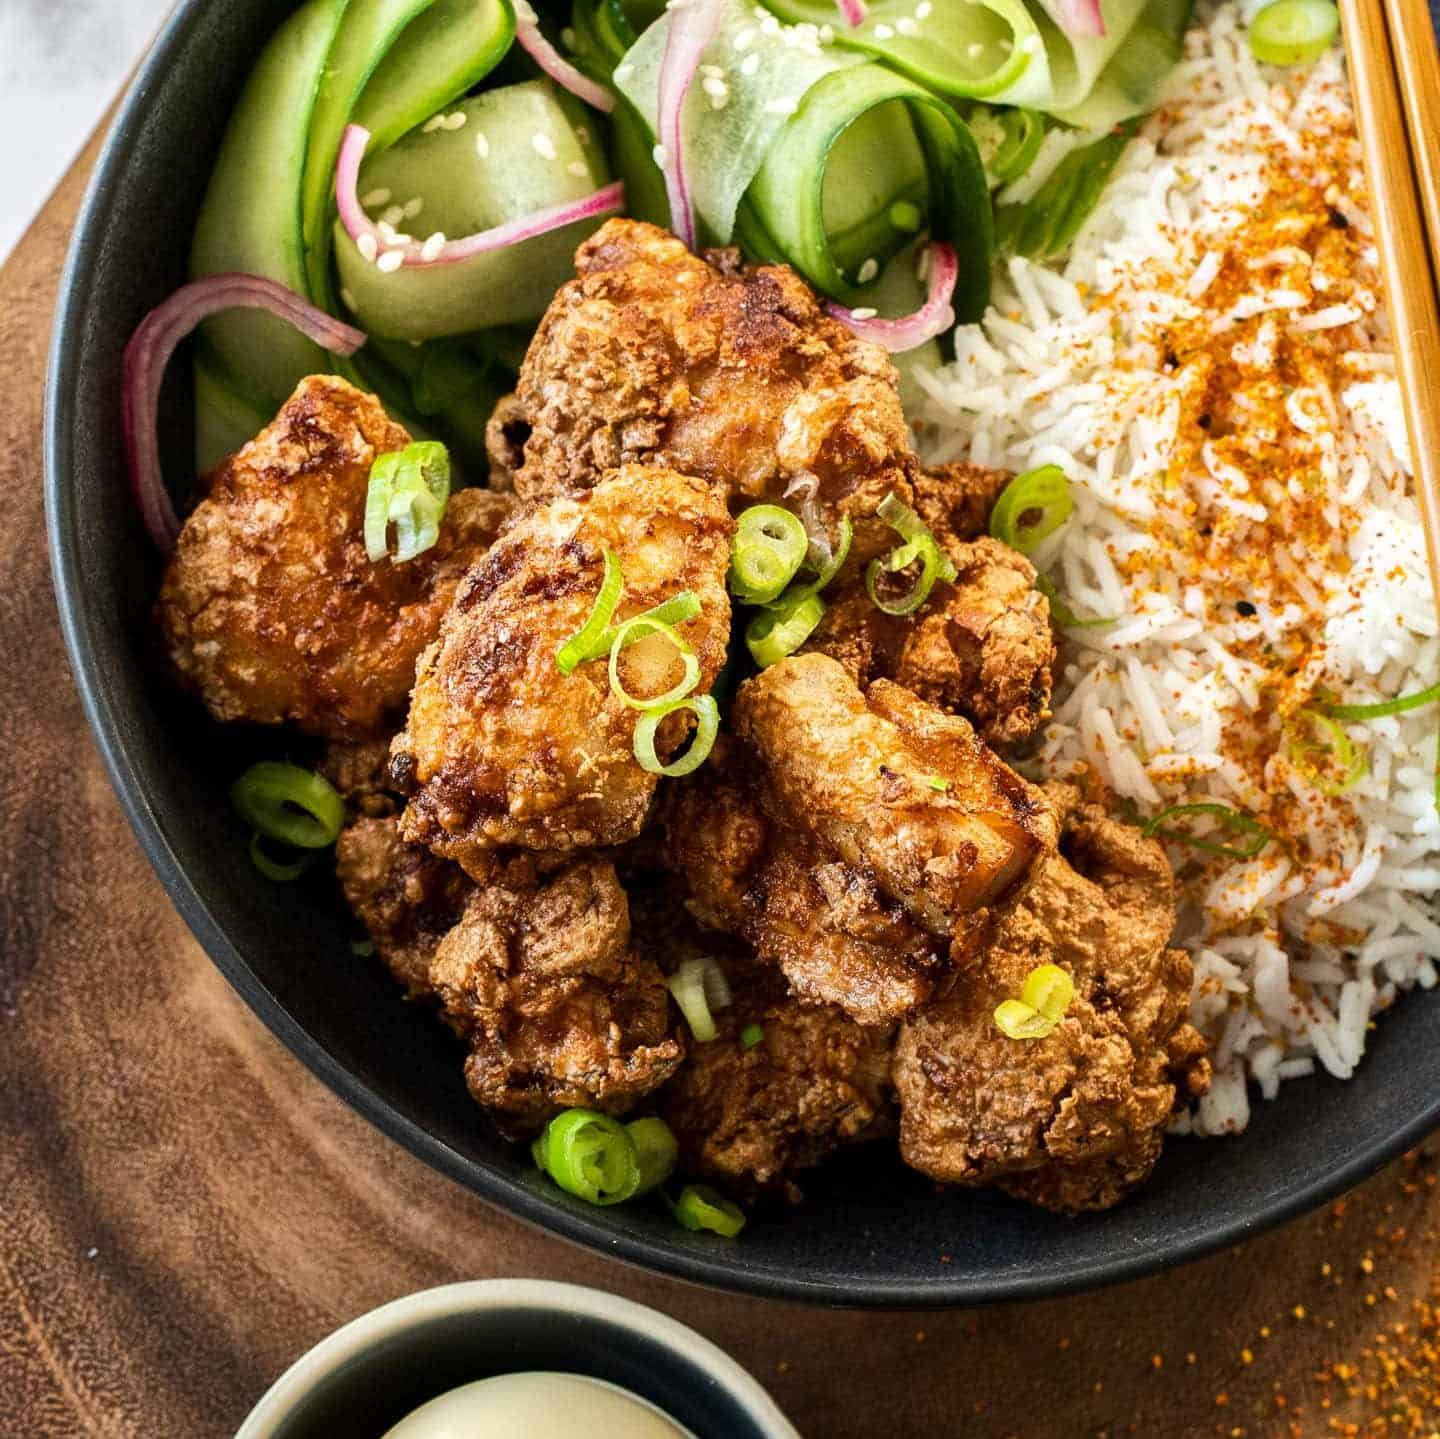 A black bowl filled with rice and fried chicken.